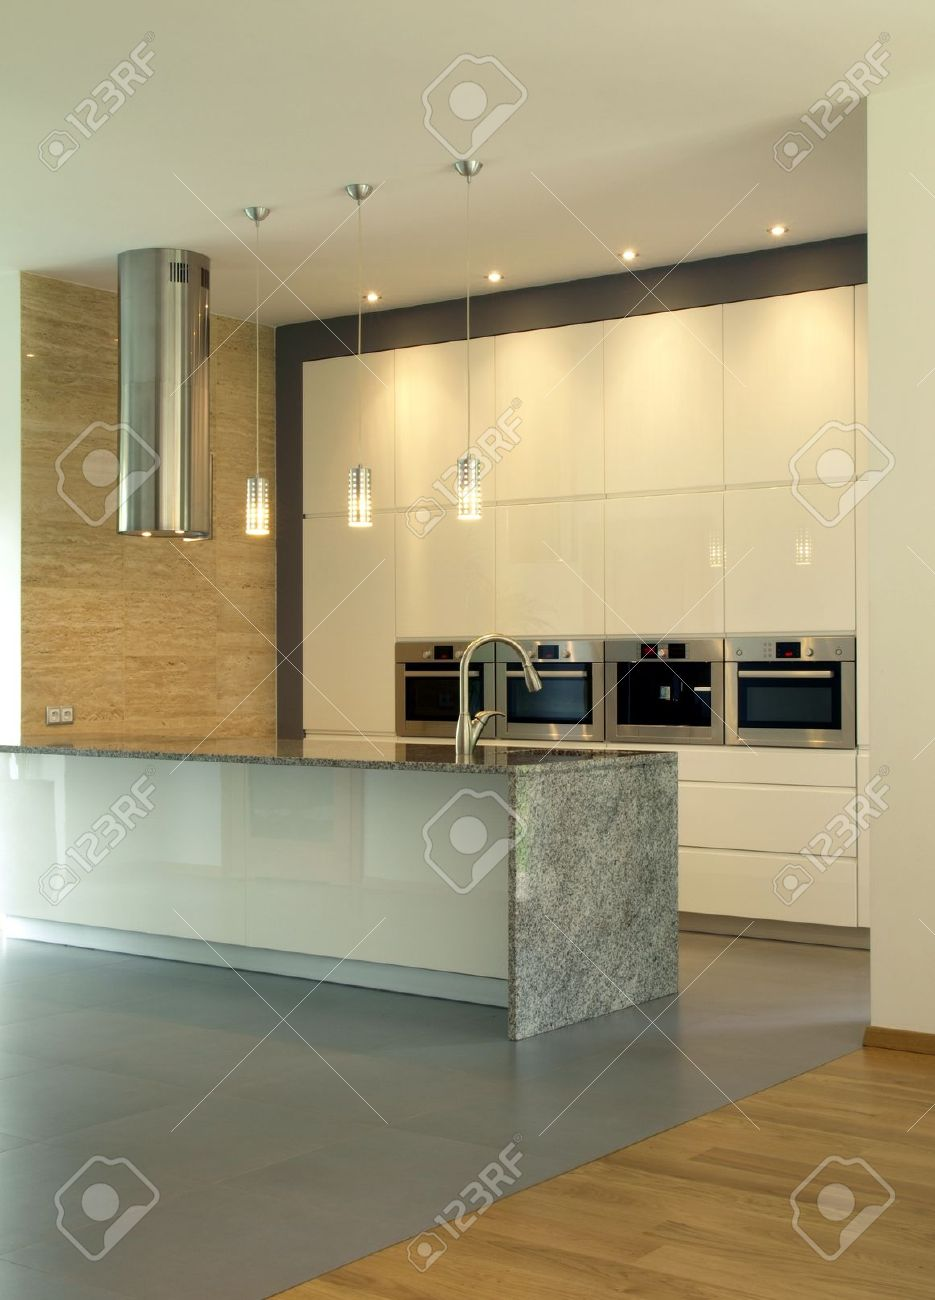 New, modern and bright kitchen with lighting